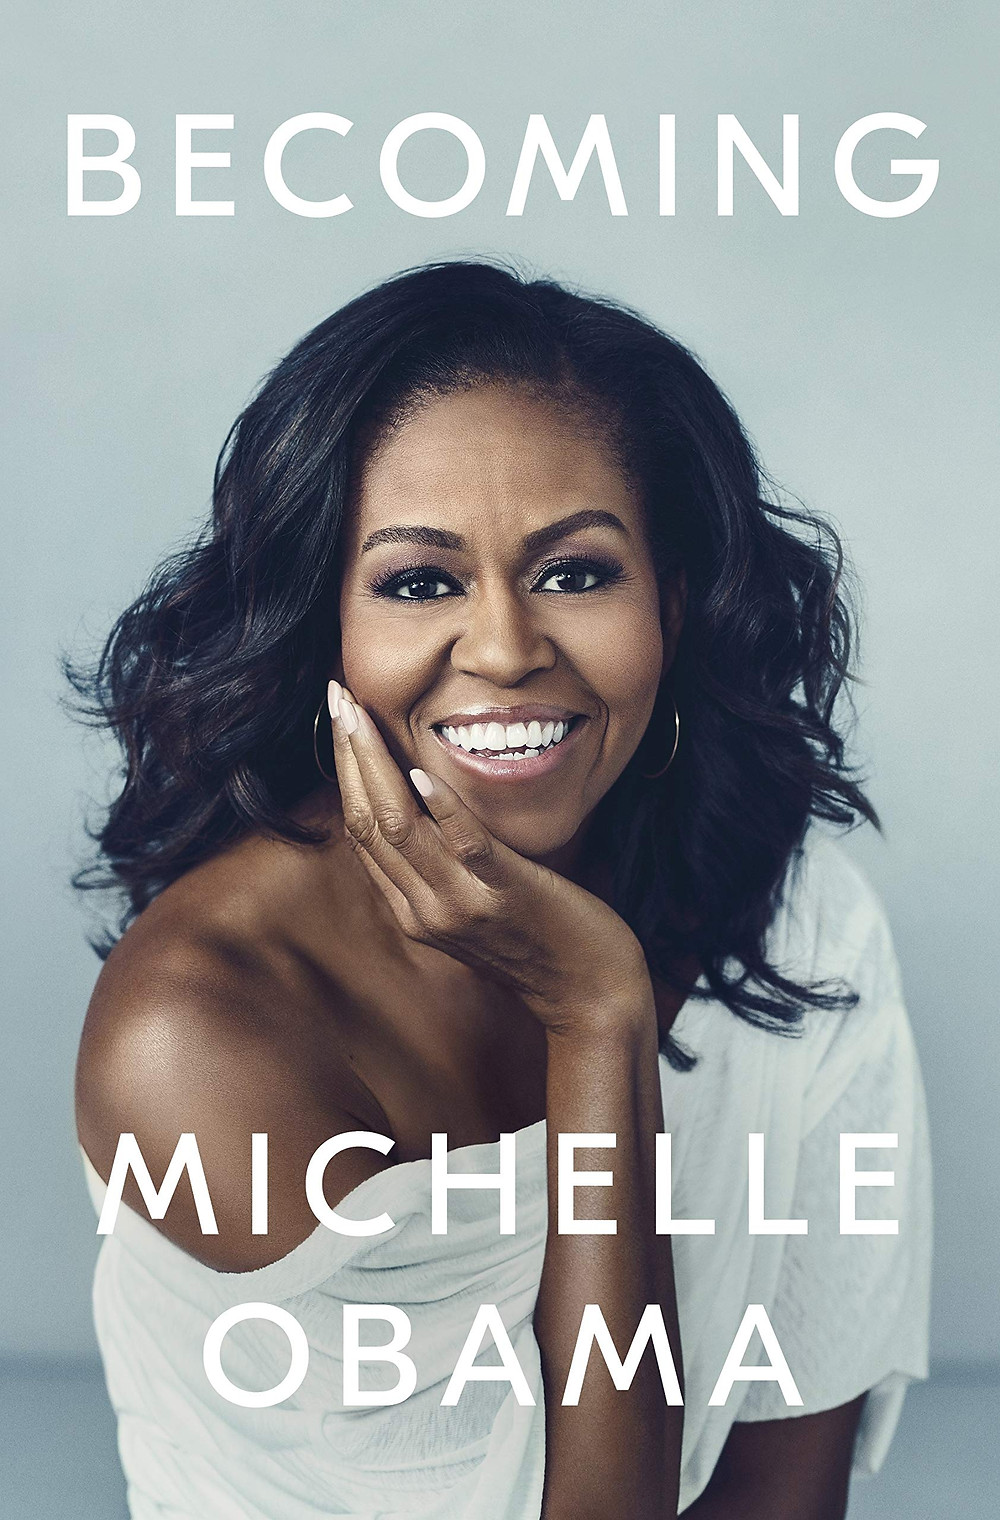 Becoming Michelle Obama Book Review Written by Han